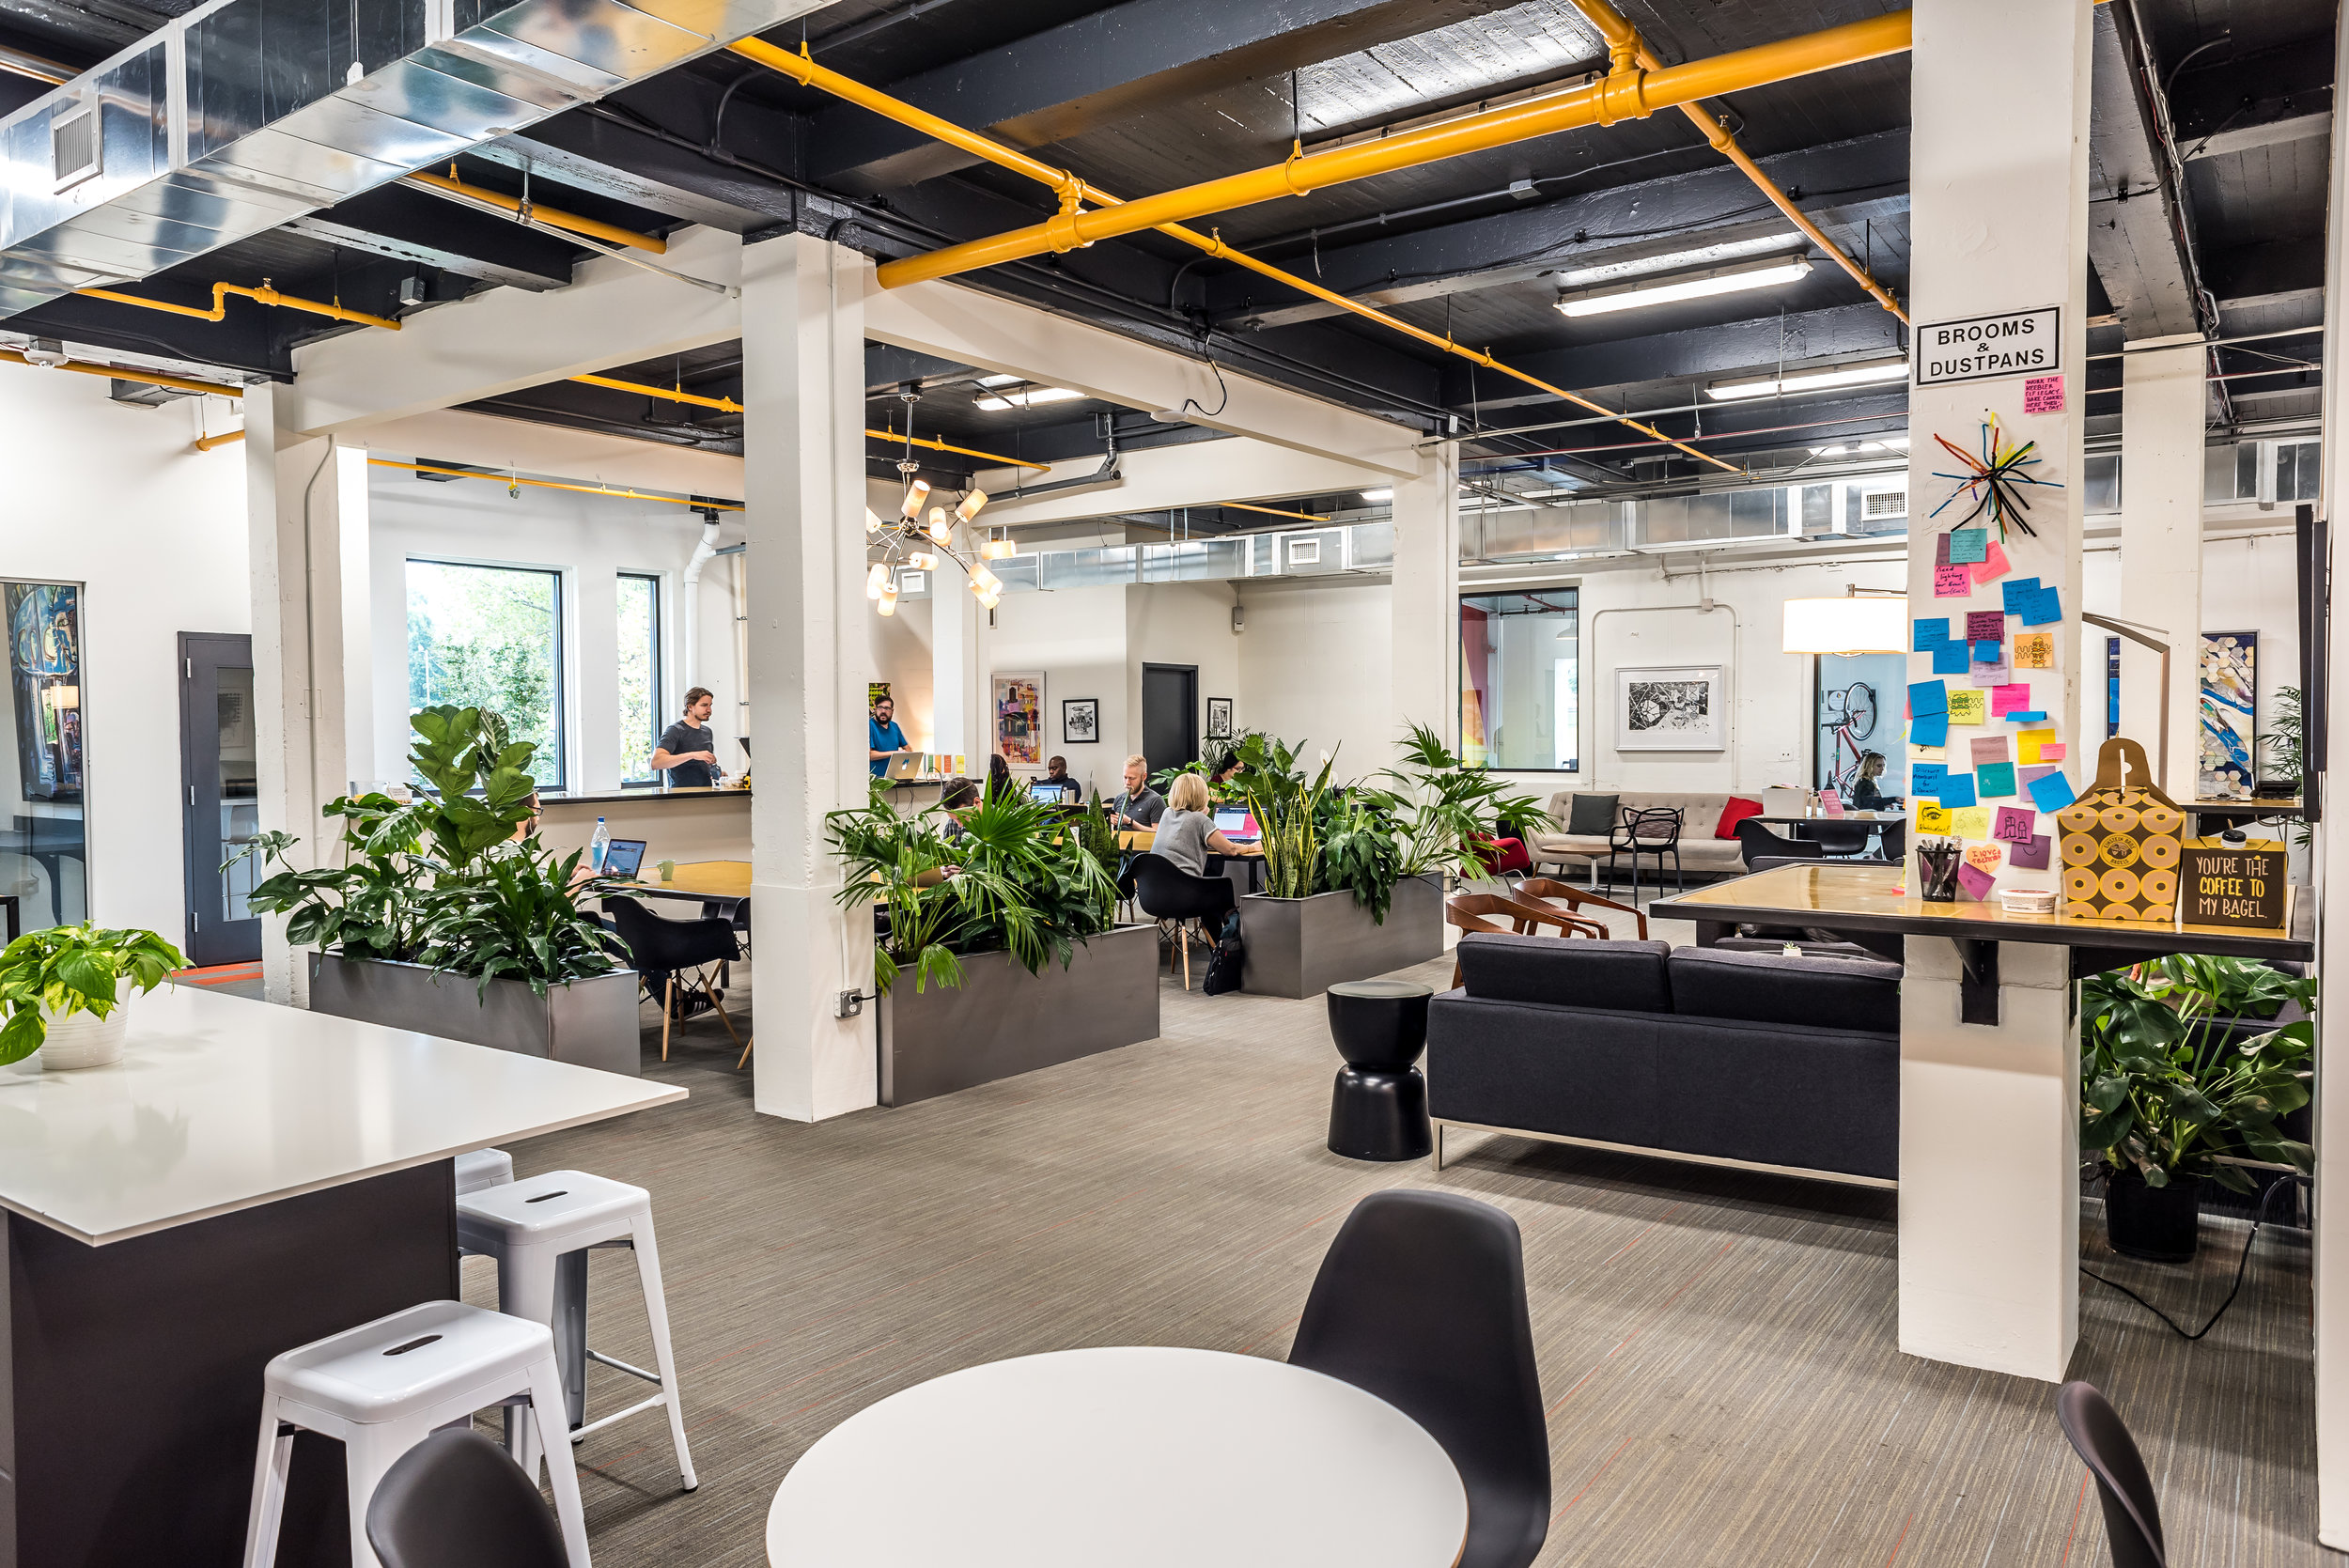 Advent Coworking renovation designed by Studio 1616